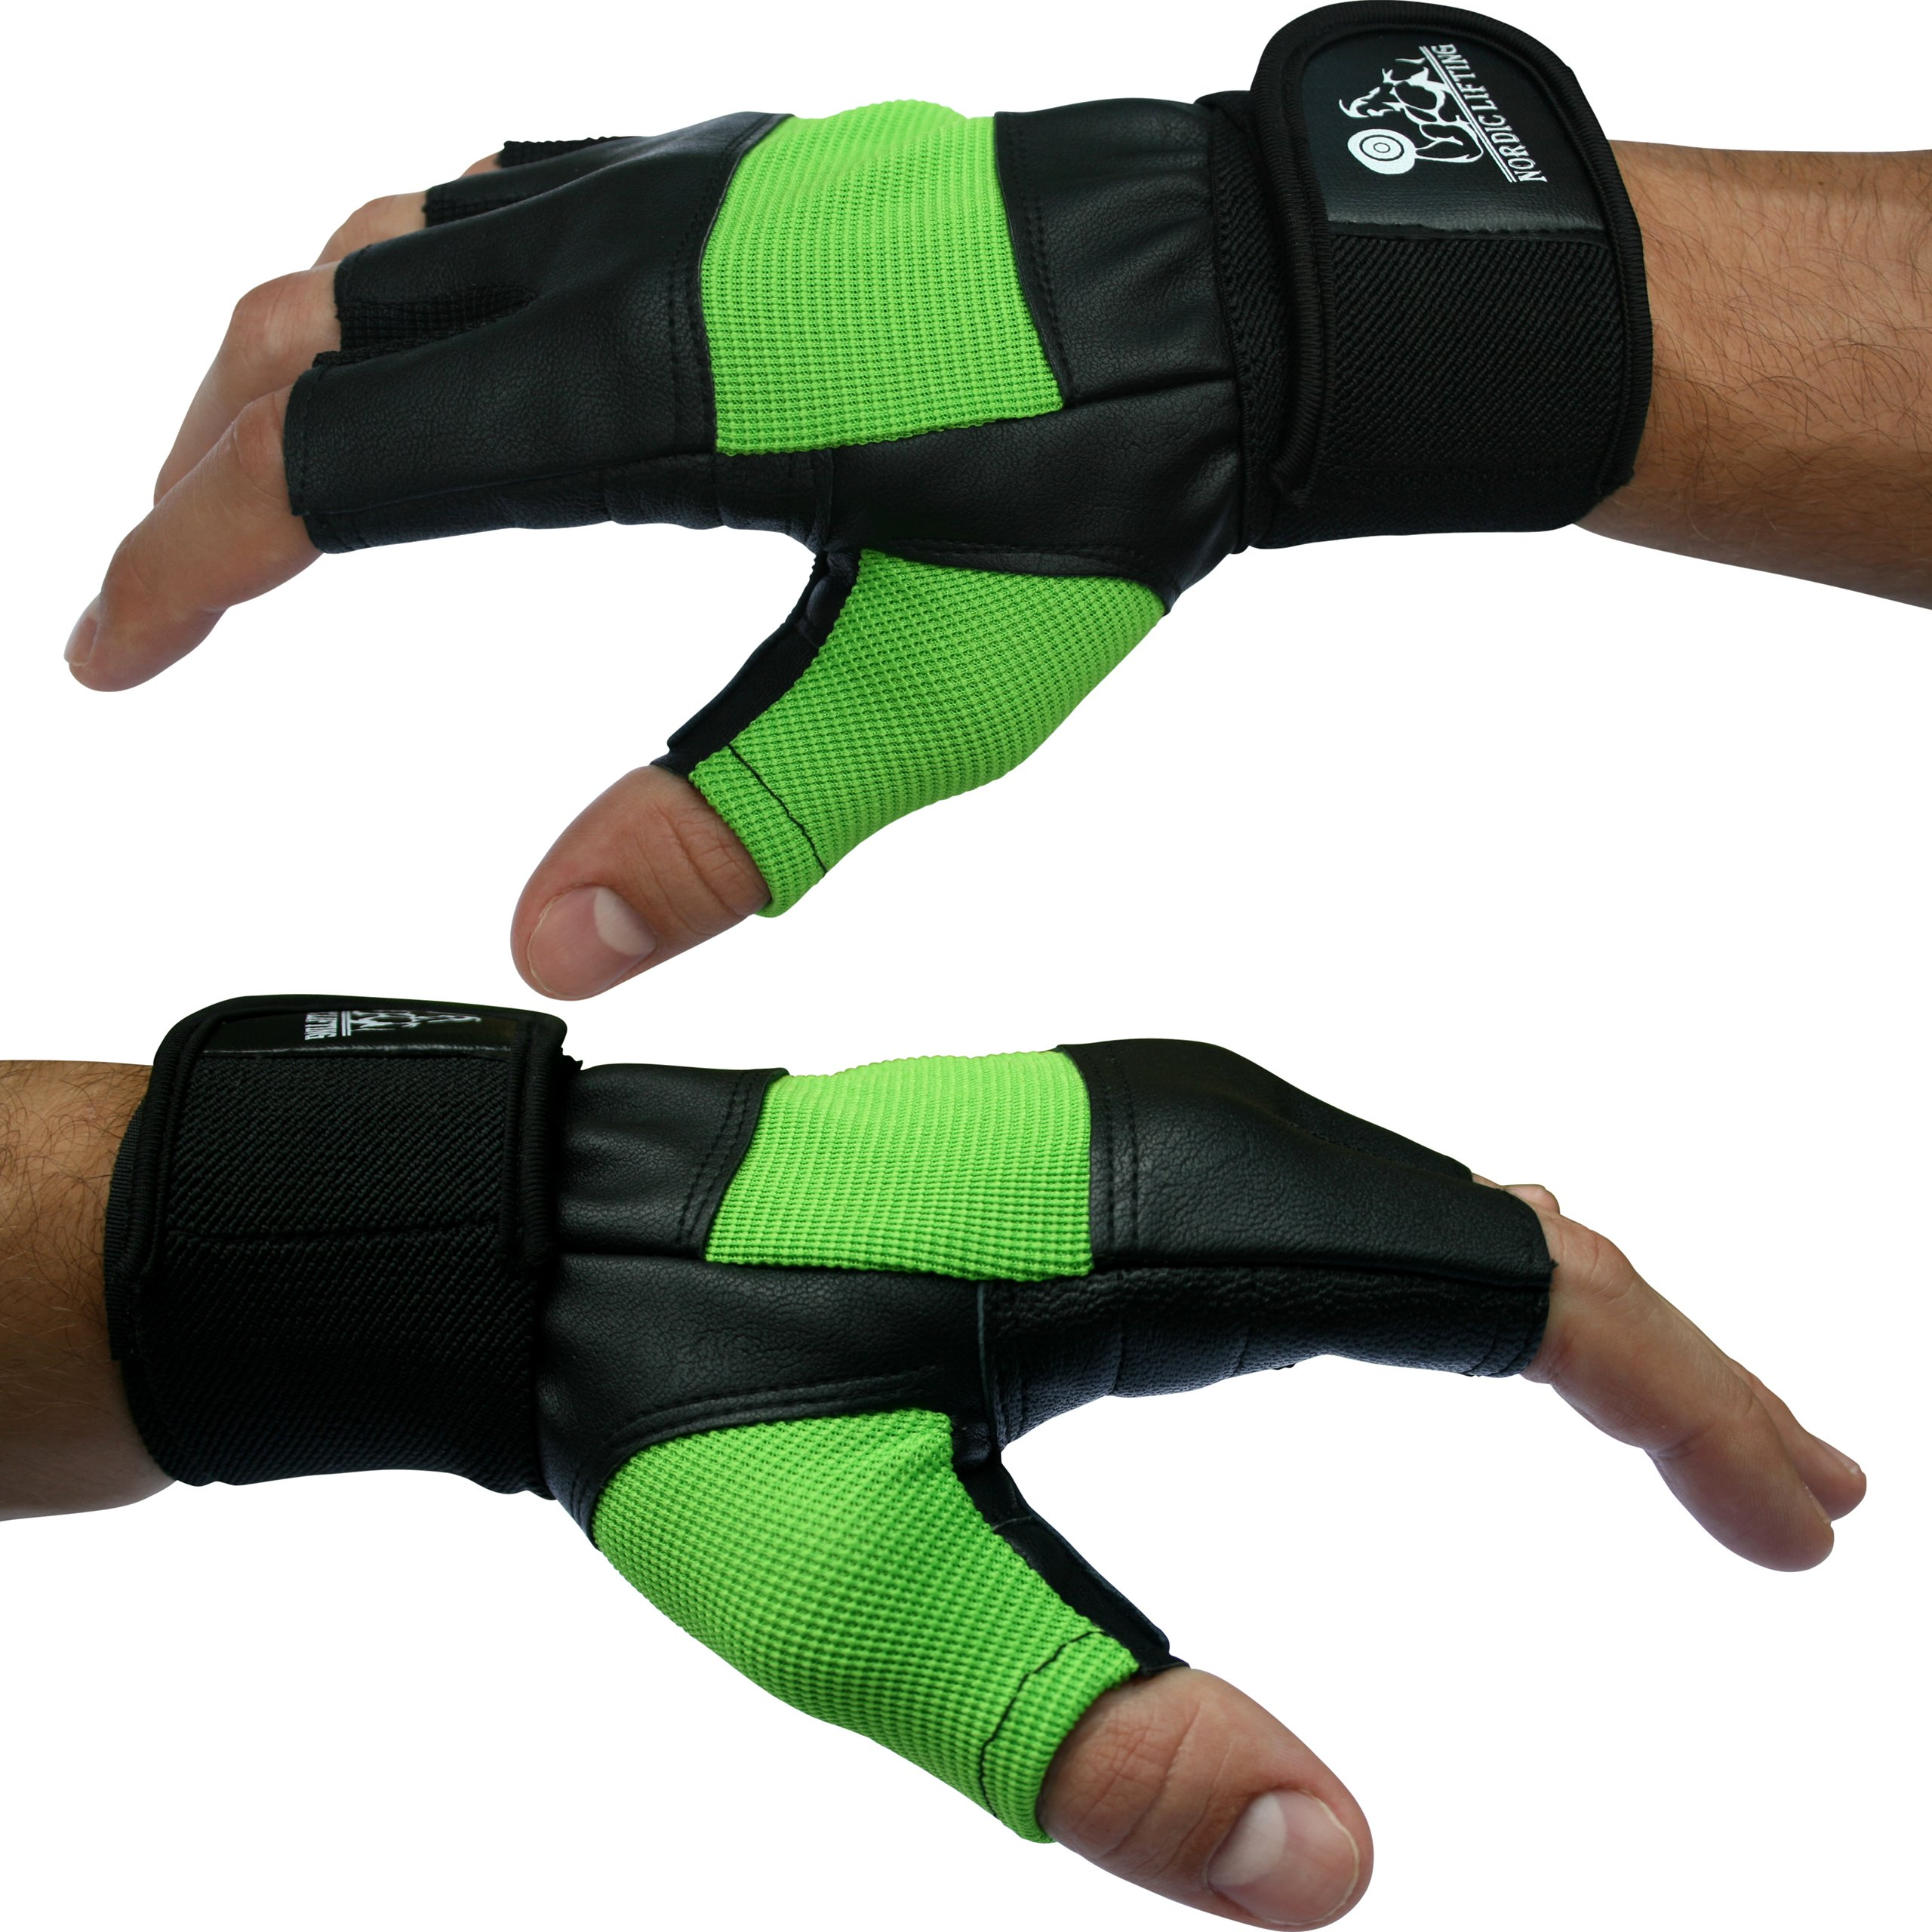 Weight Lifting Gloves with 12'' Wrist Support for Gym Workout, Weightlifting, Fitness & Cross Training - Best for Men & Women - by Nordic Lifting&Trade -(Green,Medium)-1 Year Warranty by Nordic Lifting